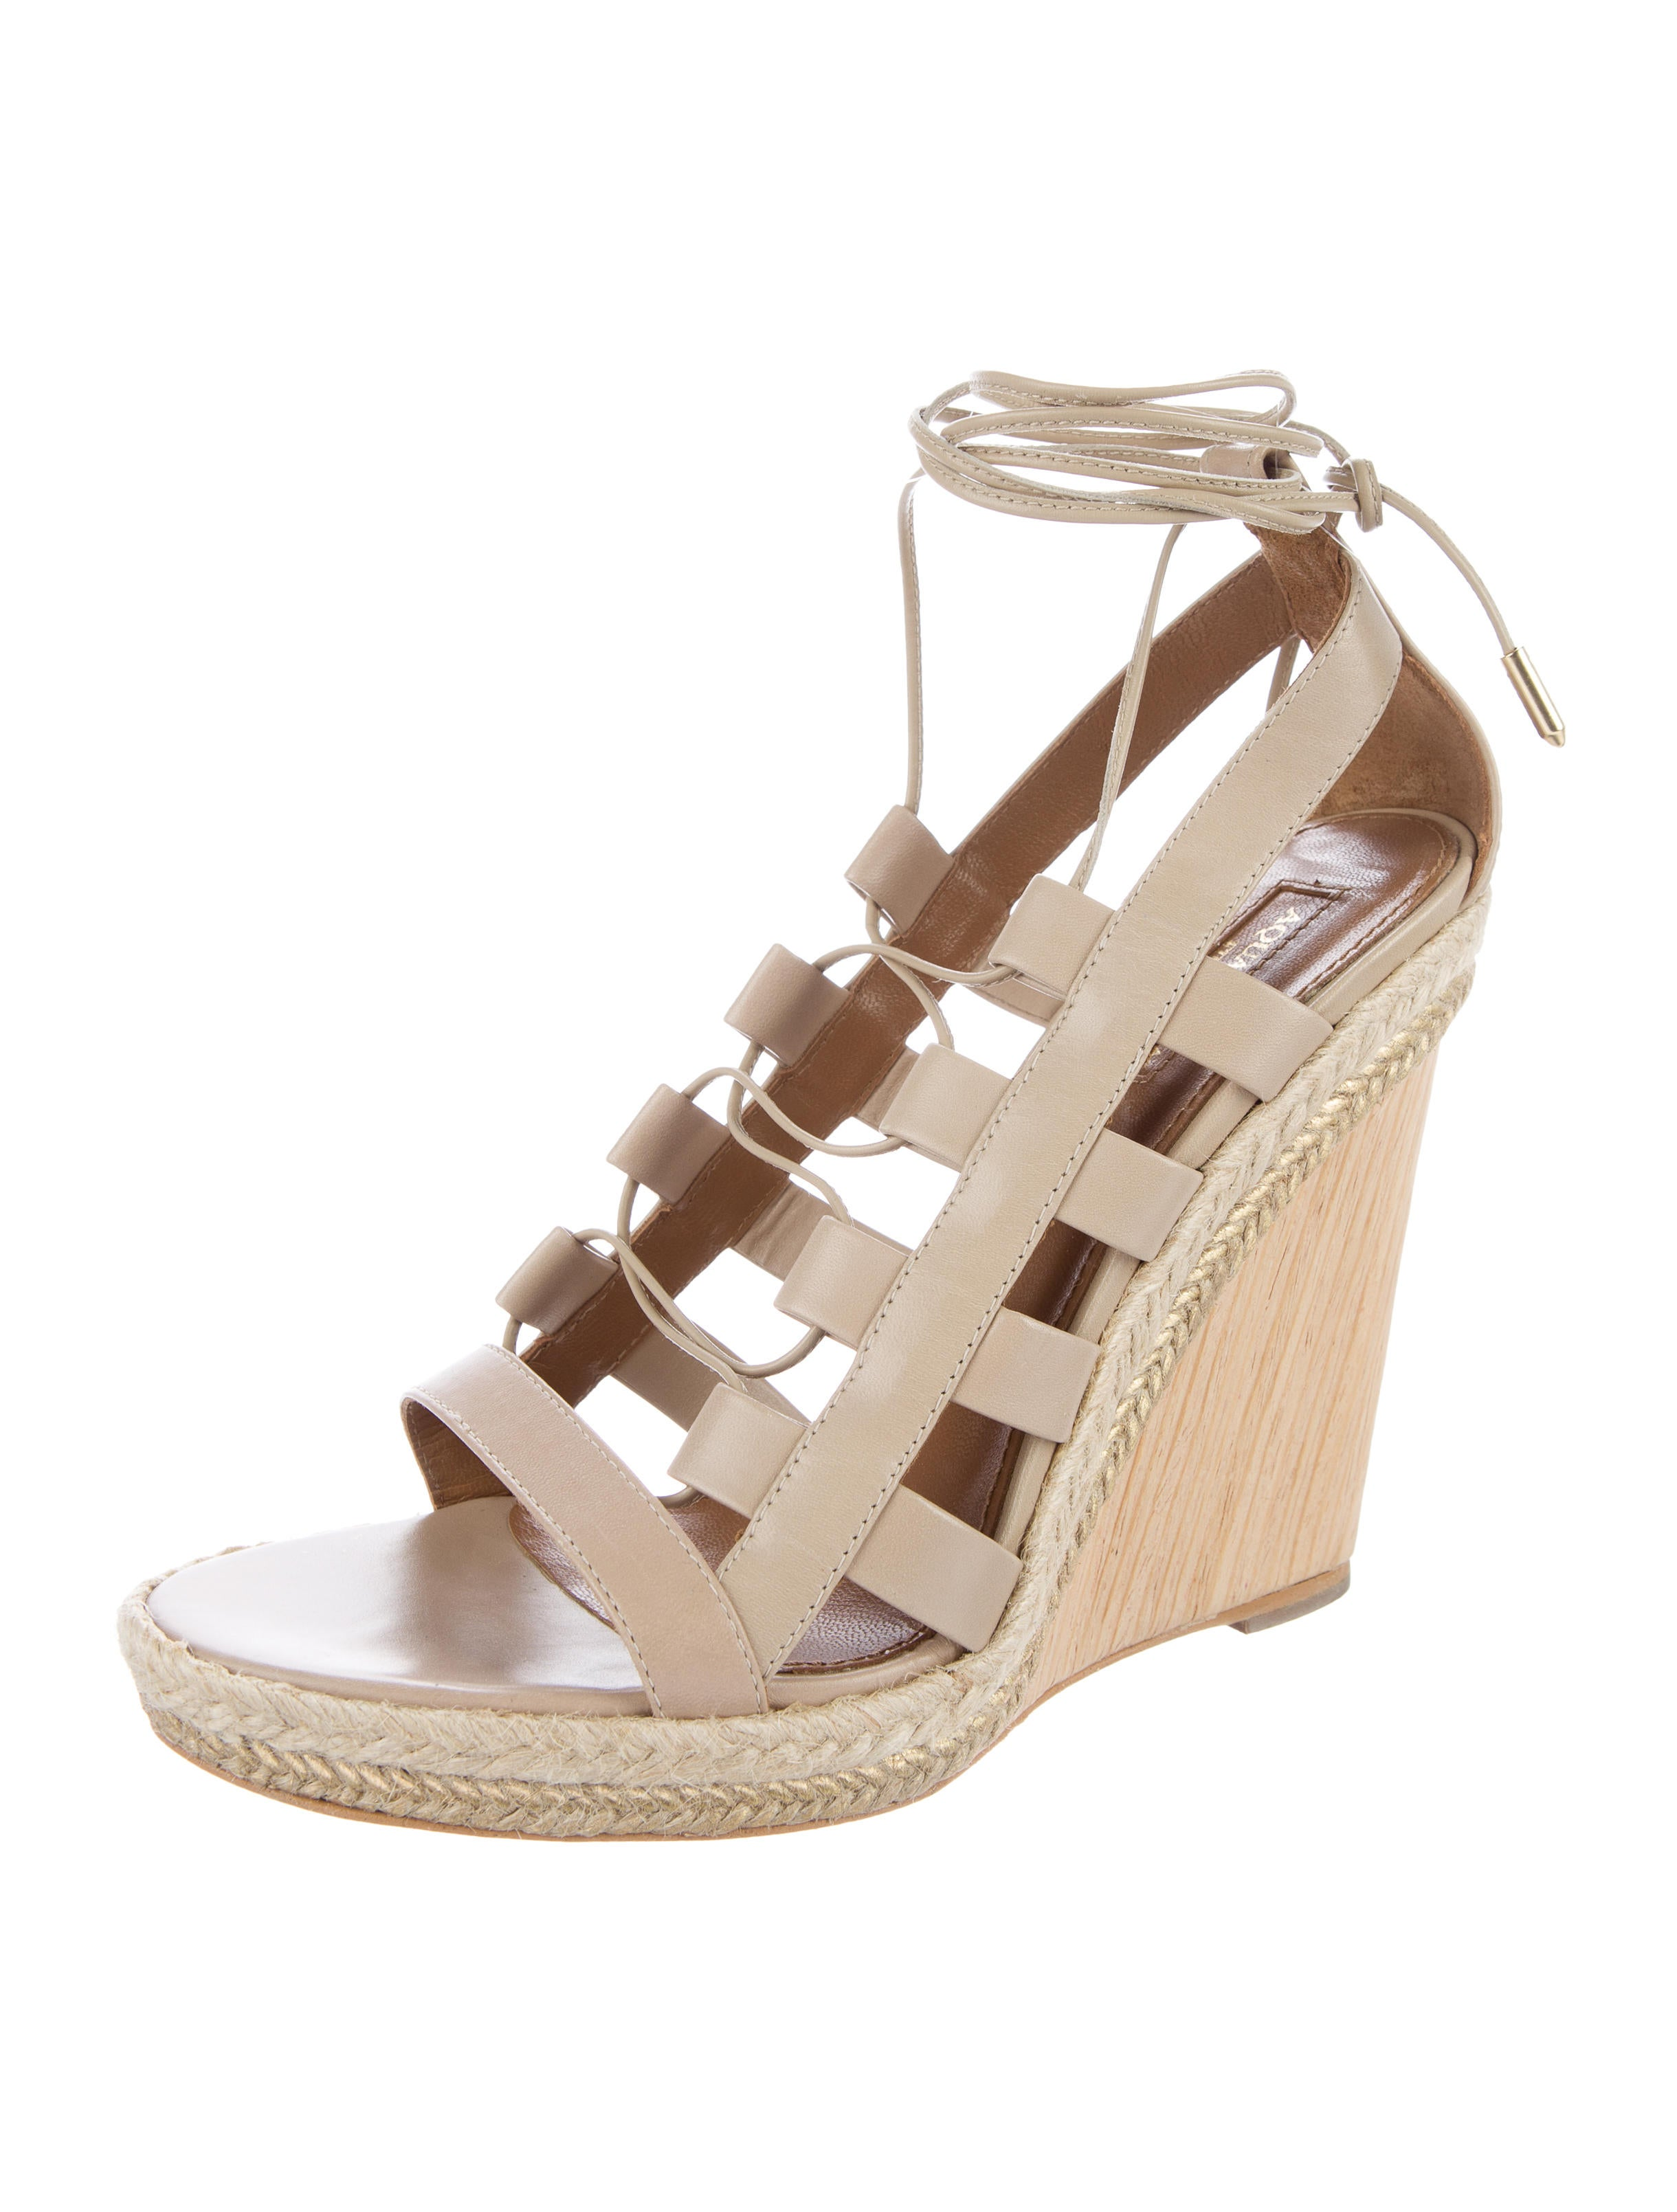 Aquazzura Amazon Wedge Sandals - Shoes - AQZ21586 | The ...